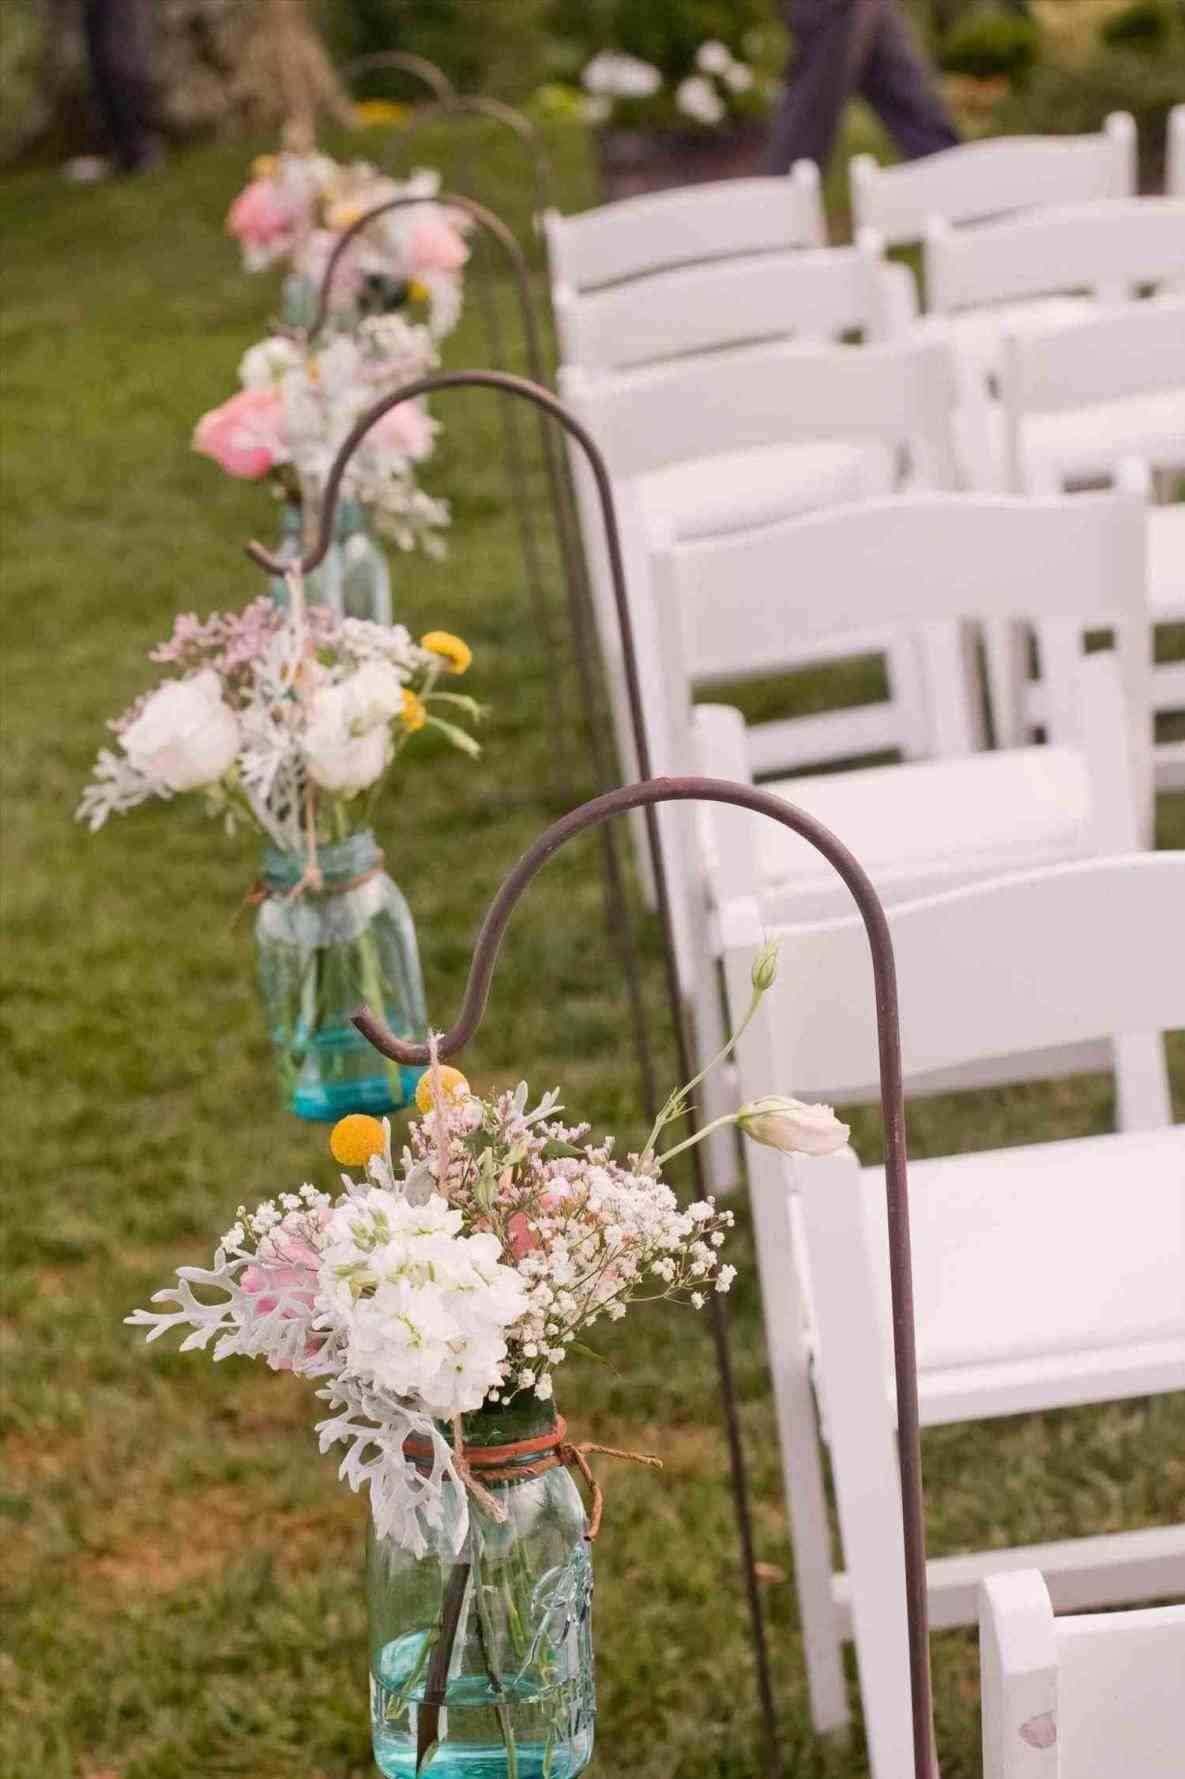 Suggested Sites Hint Wedbridal Site Clean Commerce Immediately This Instant Used Online Online Store Very Cheap Quality Online Sales Country Spring Wedding Ideas Rustic Spring Wedding Gazebo Wedding